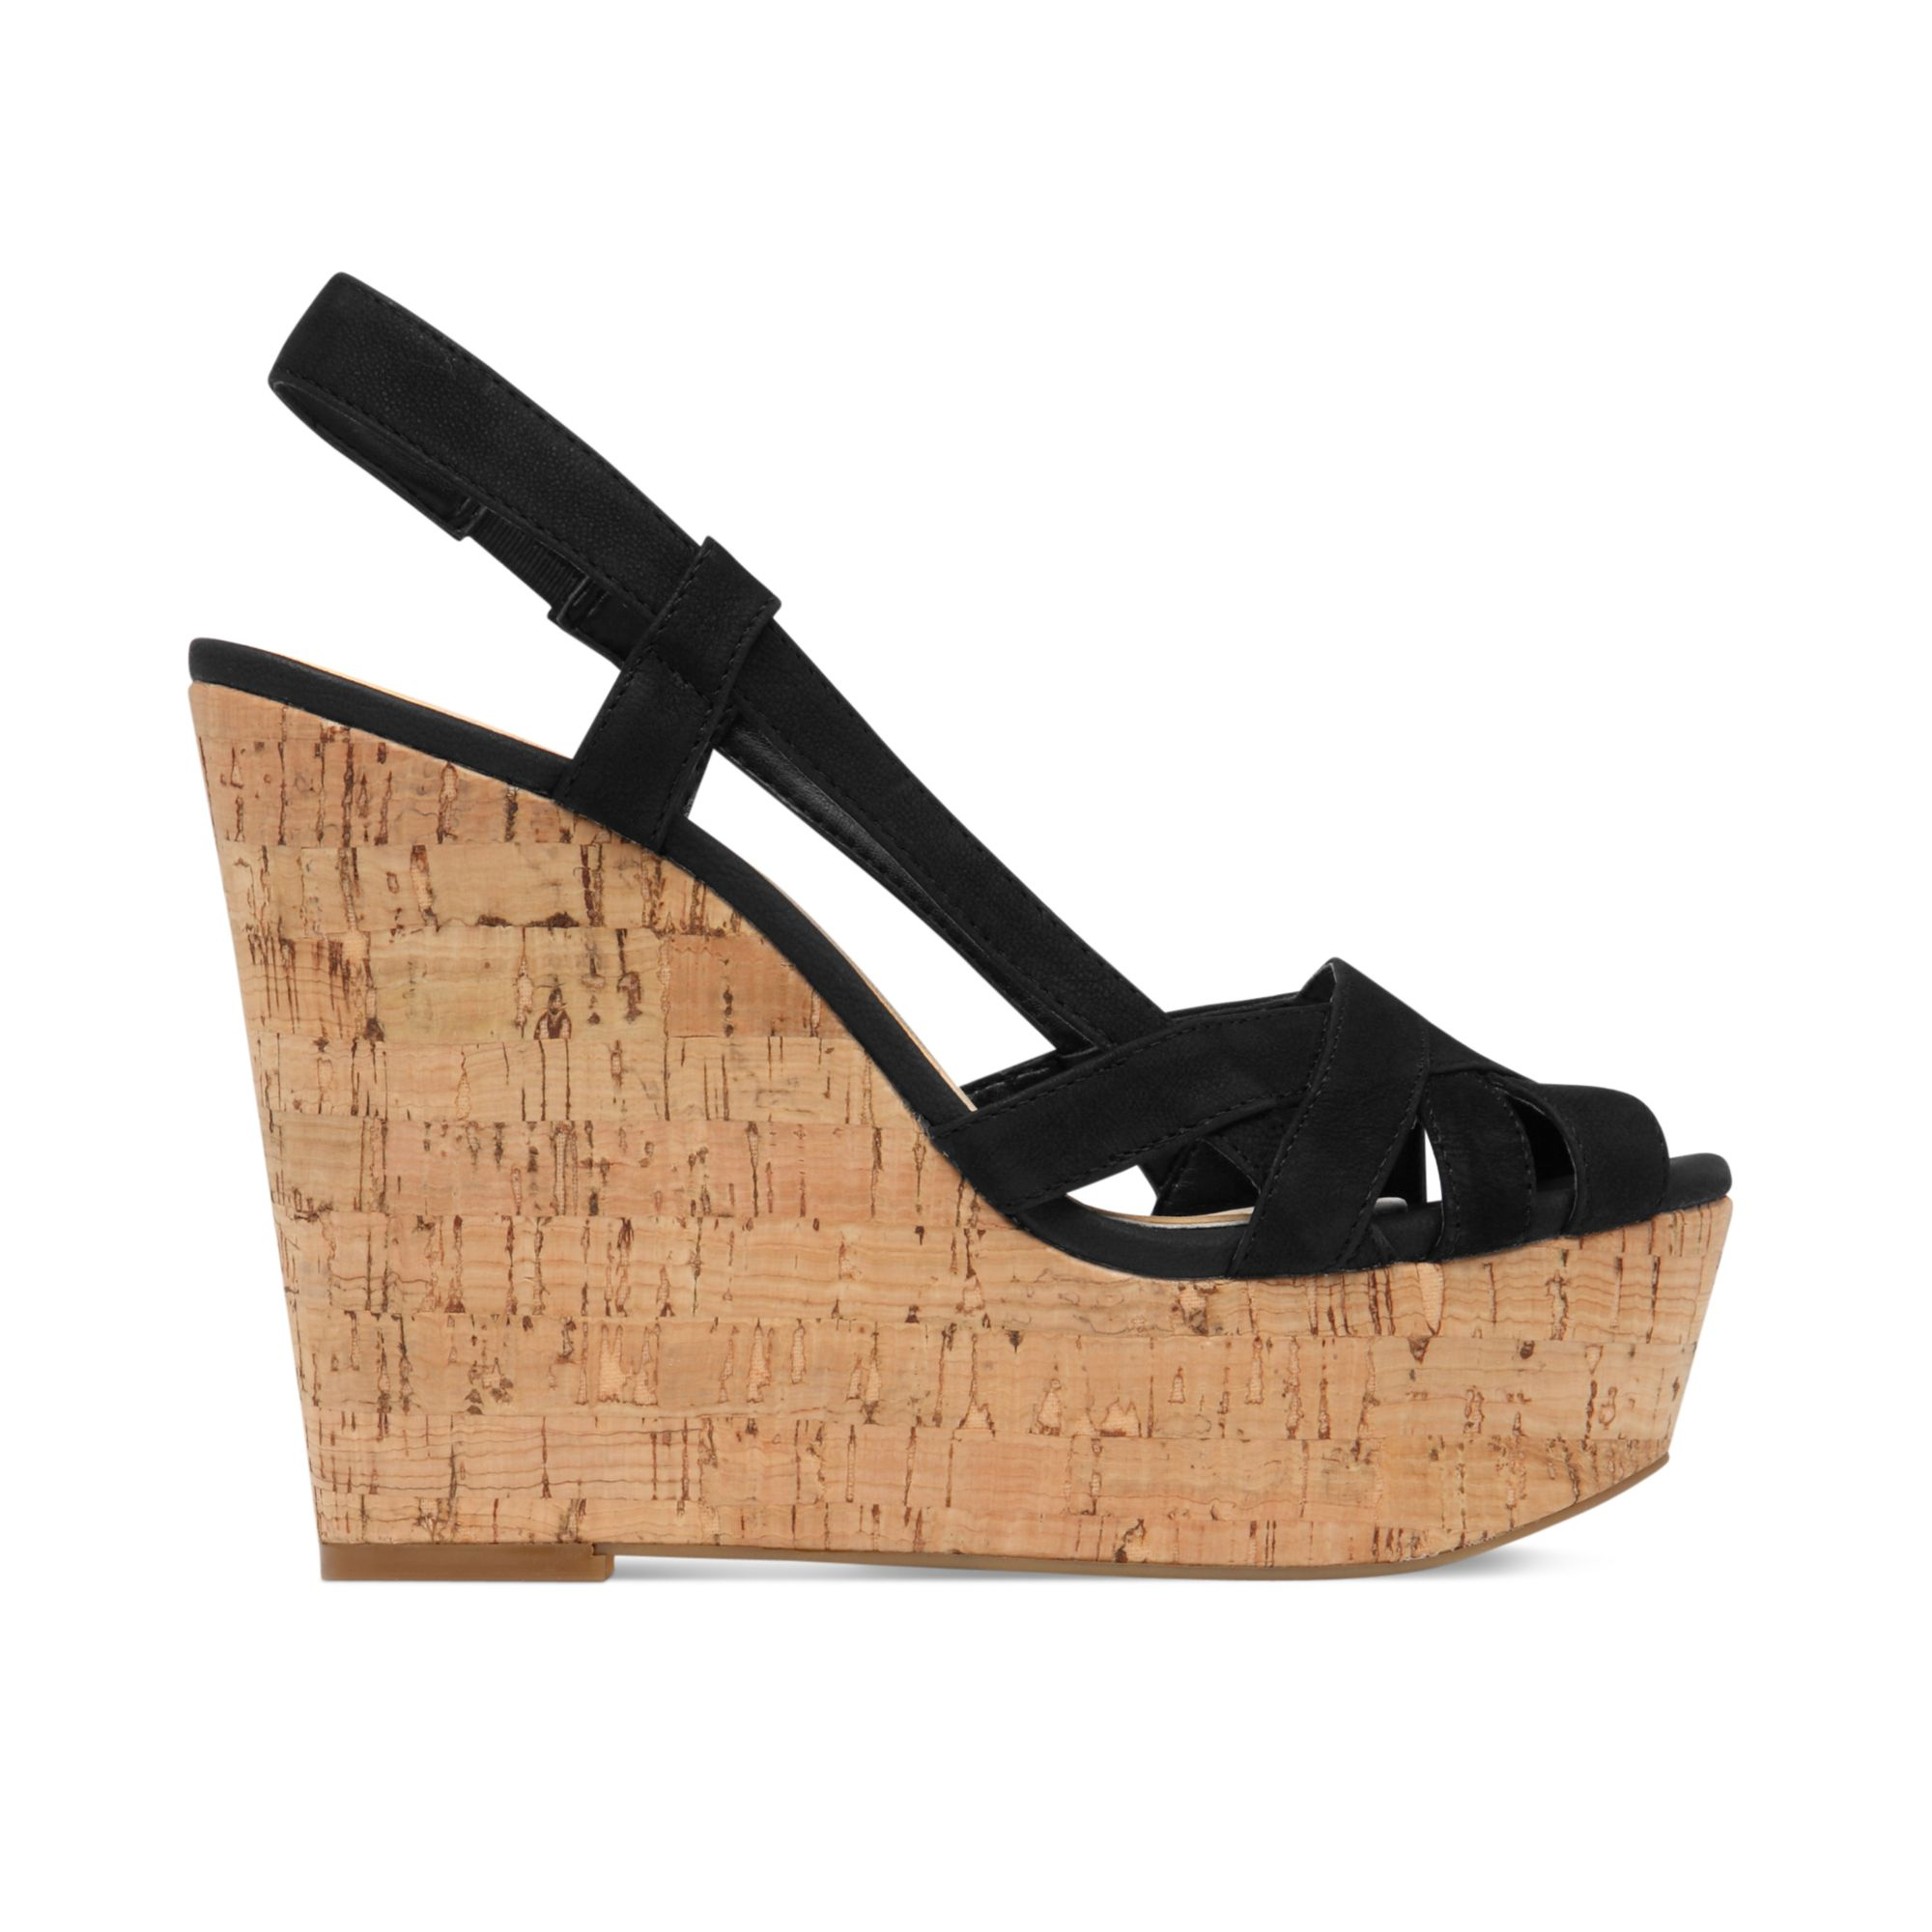 Jessica Simpson Wedge Shoes Sale